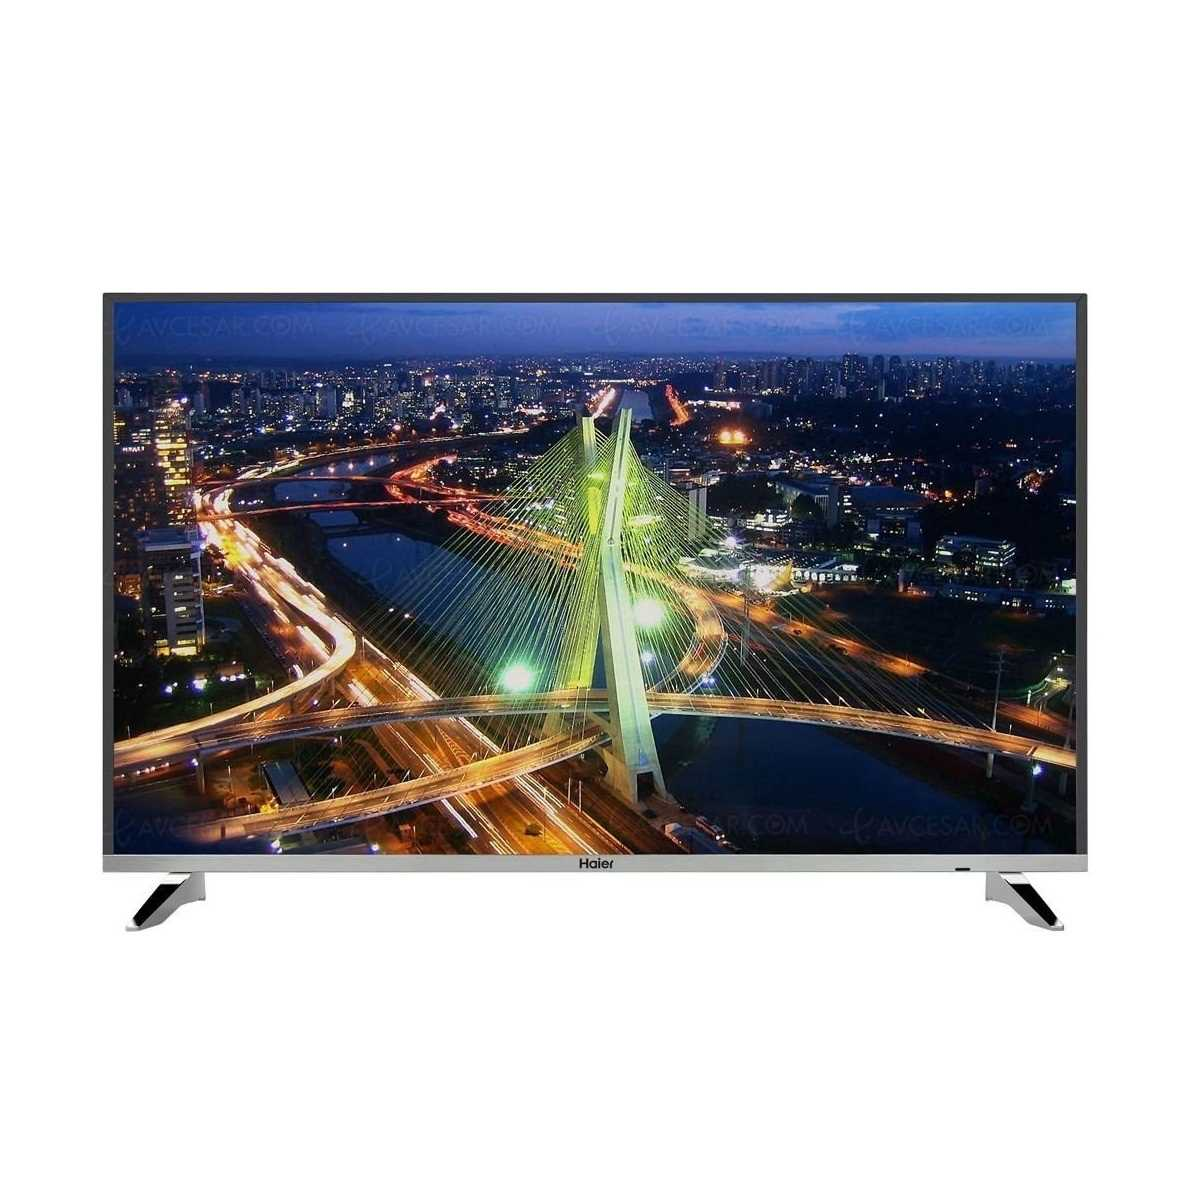 haier smart tv. haier 55u6500u 55 inch 4k ultra hd smart led television price {25 nov 2017} | reviews and specifications tv